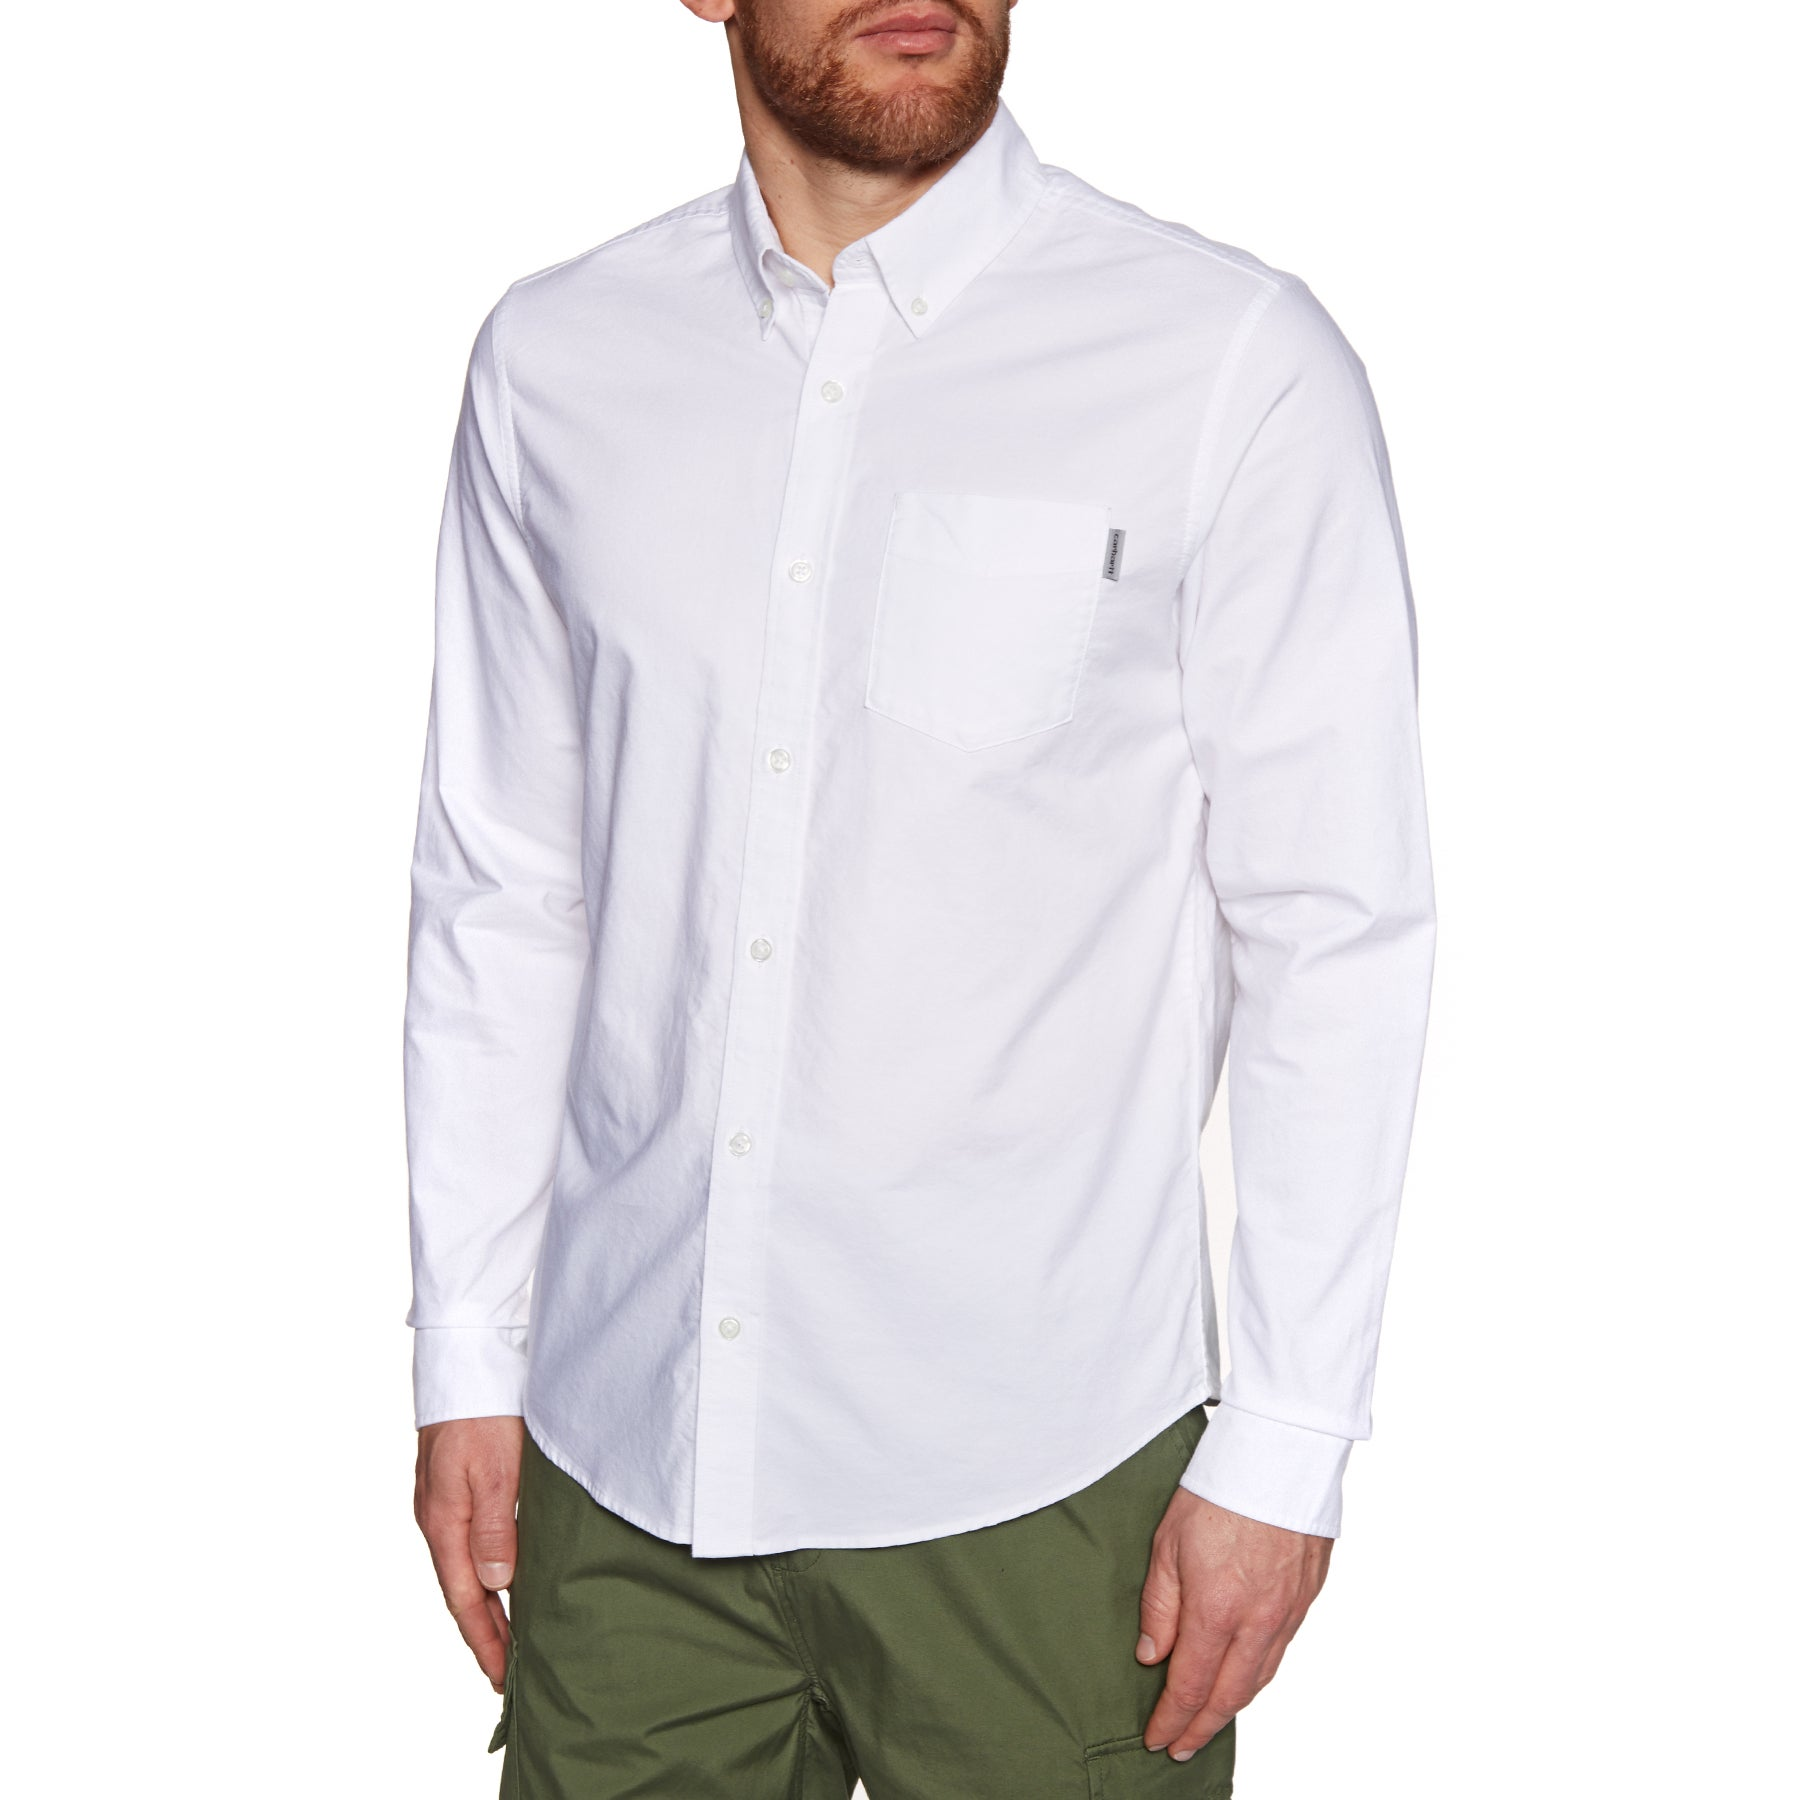 Carhartt Button Down Pocket Shirt - White